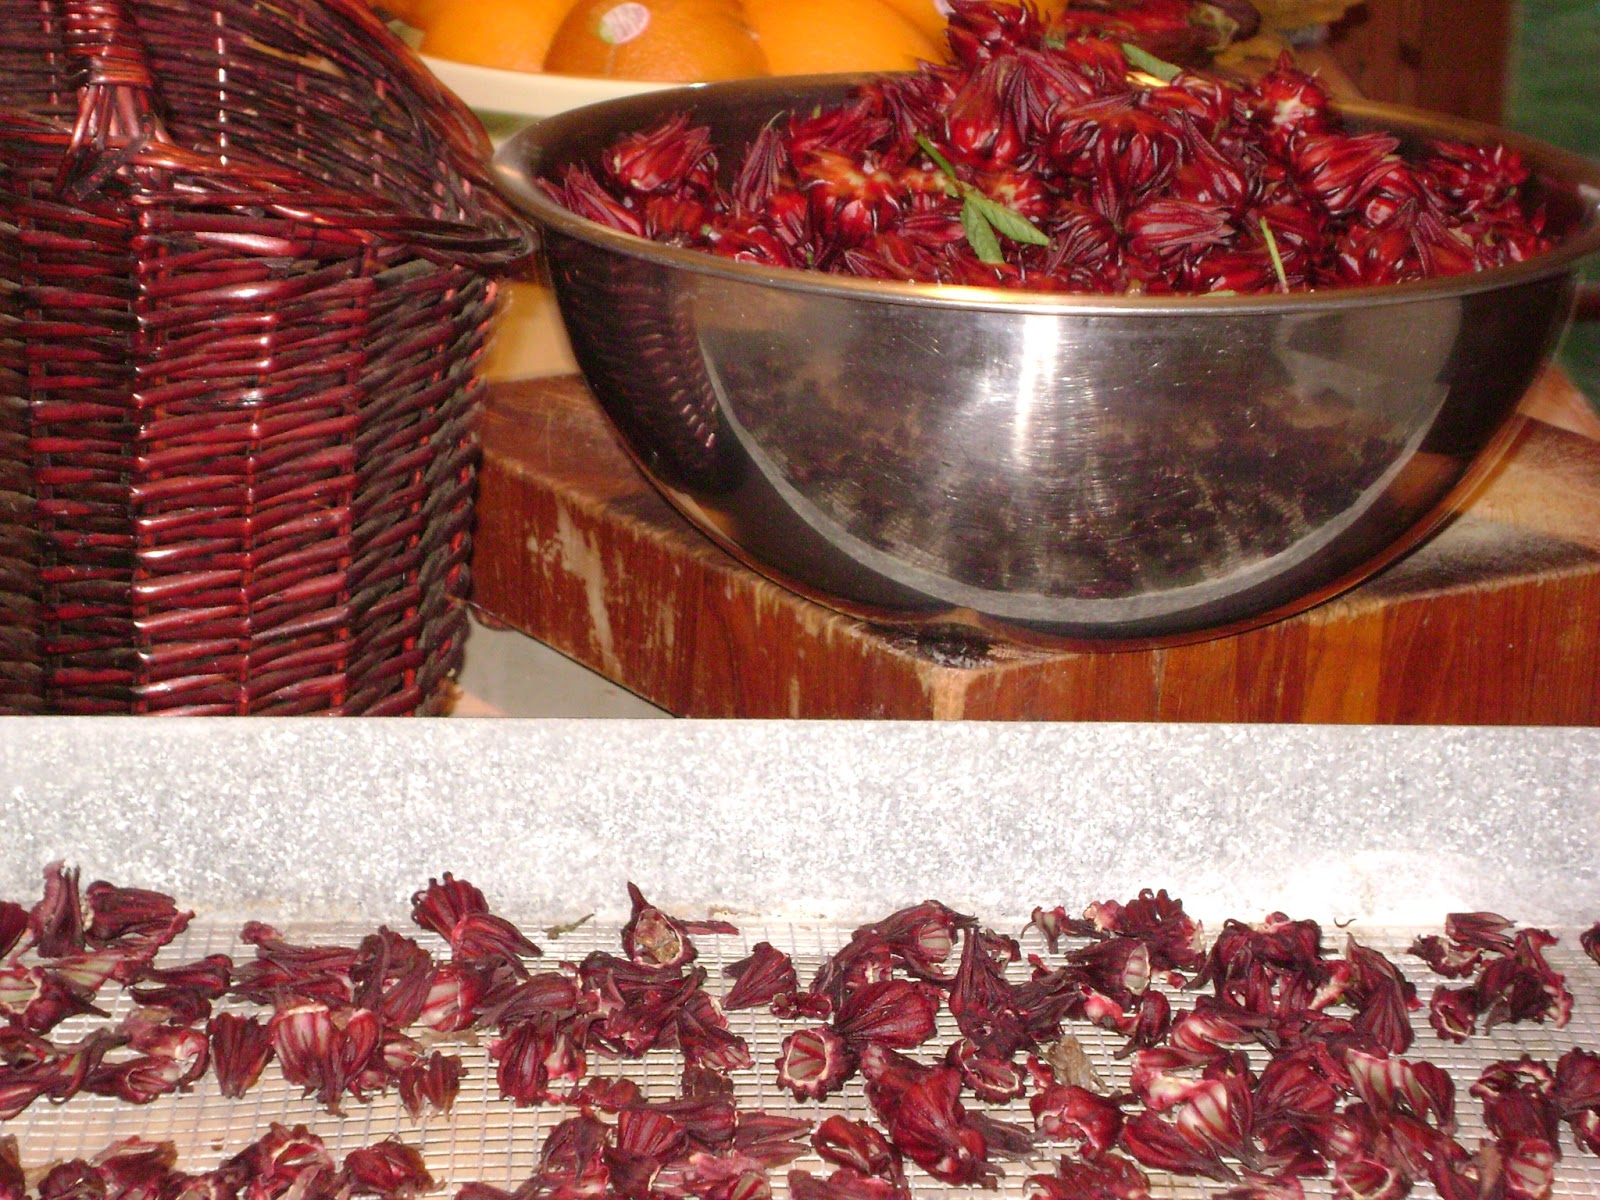 Tsg roselle hibiscus harvest preserving and health roselle hibiscus harvest preserving and health izmirmasajfo Gallery